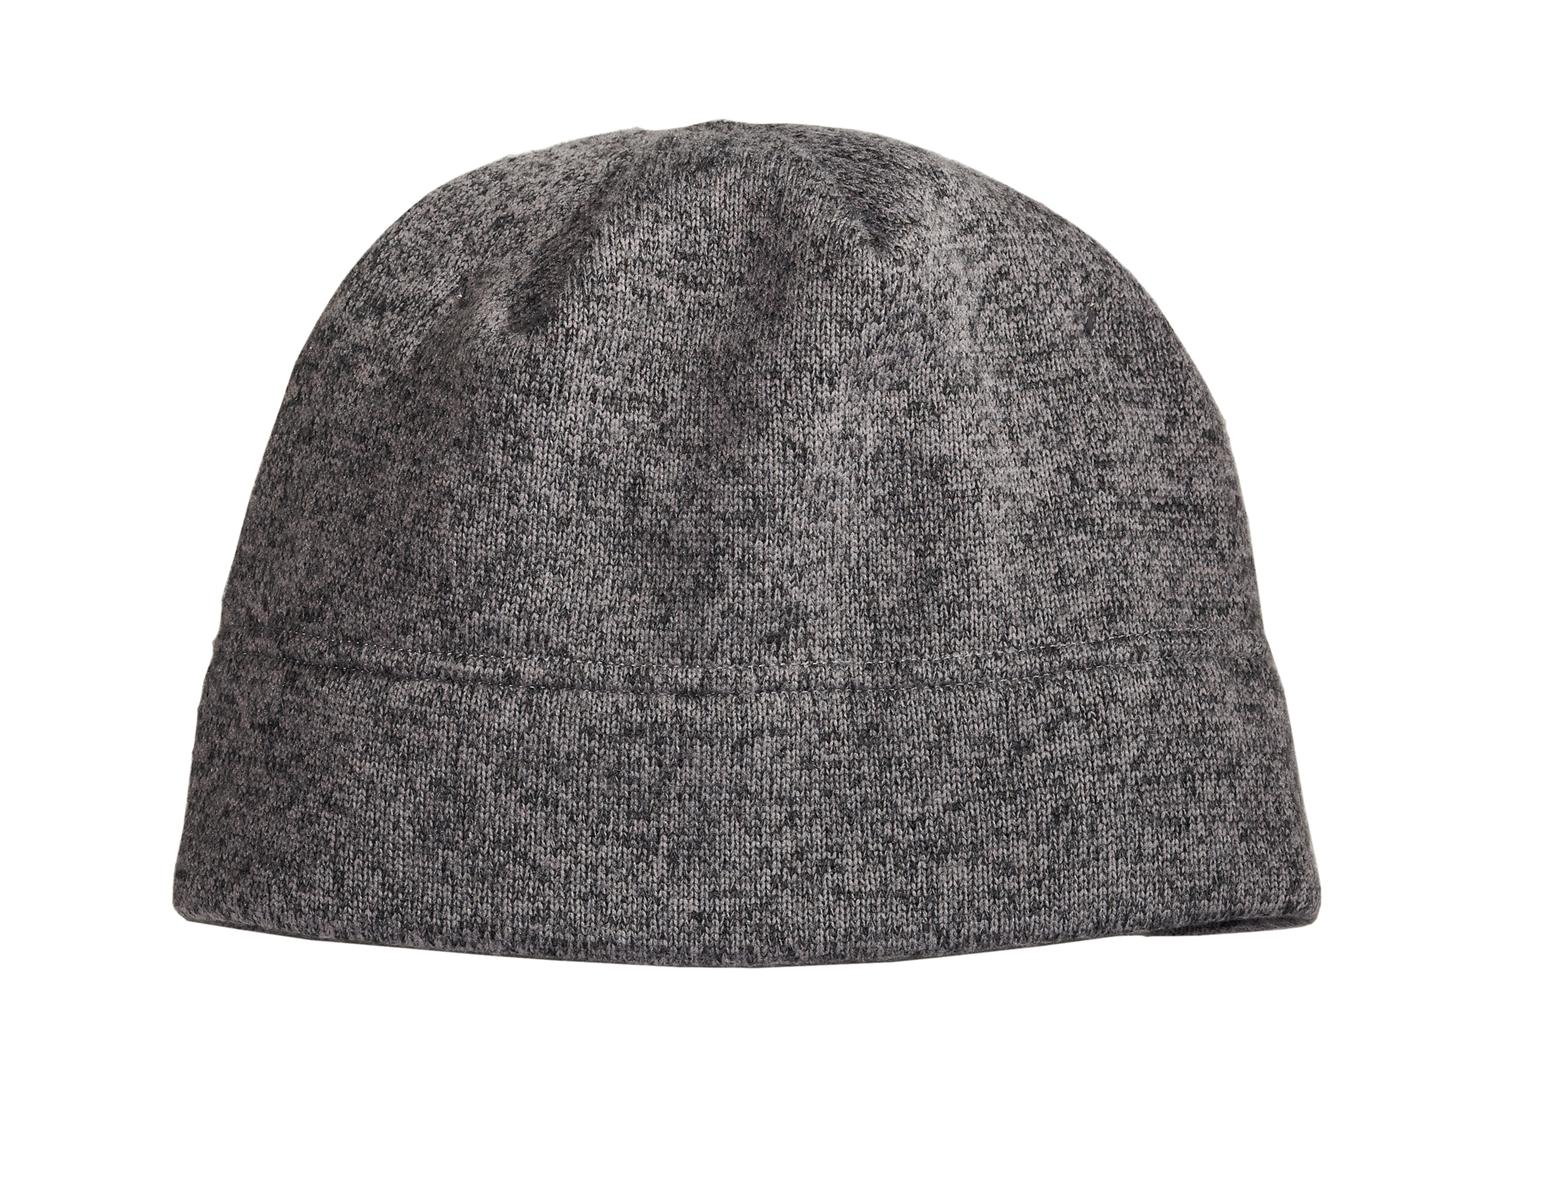 Port Authority Embroidered Heathered Knit Fleece Beanie - Queensboro abacaaa7bbd